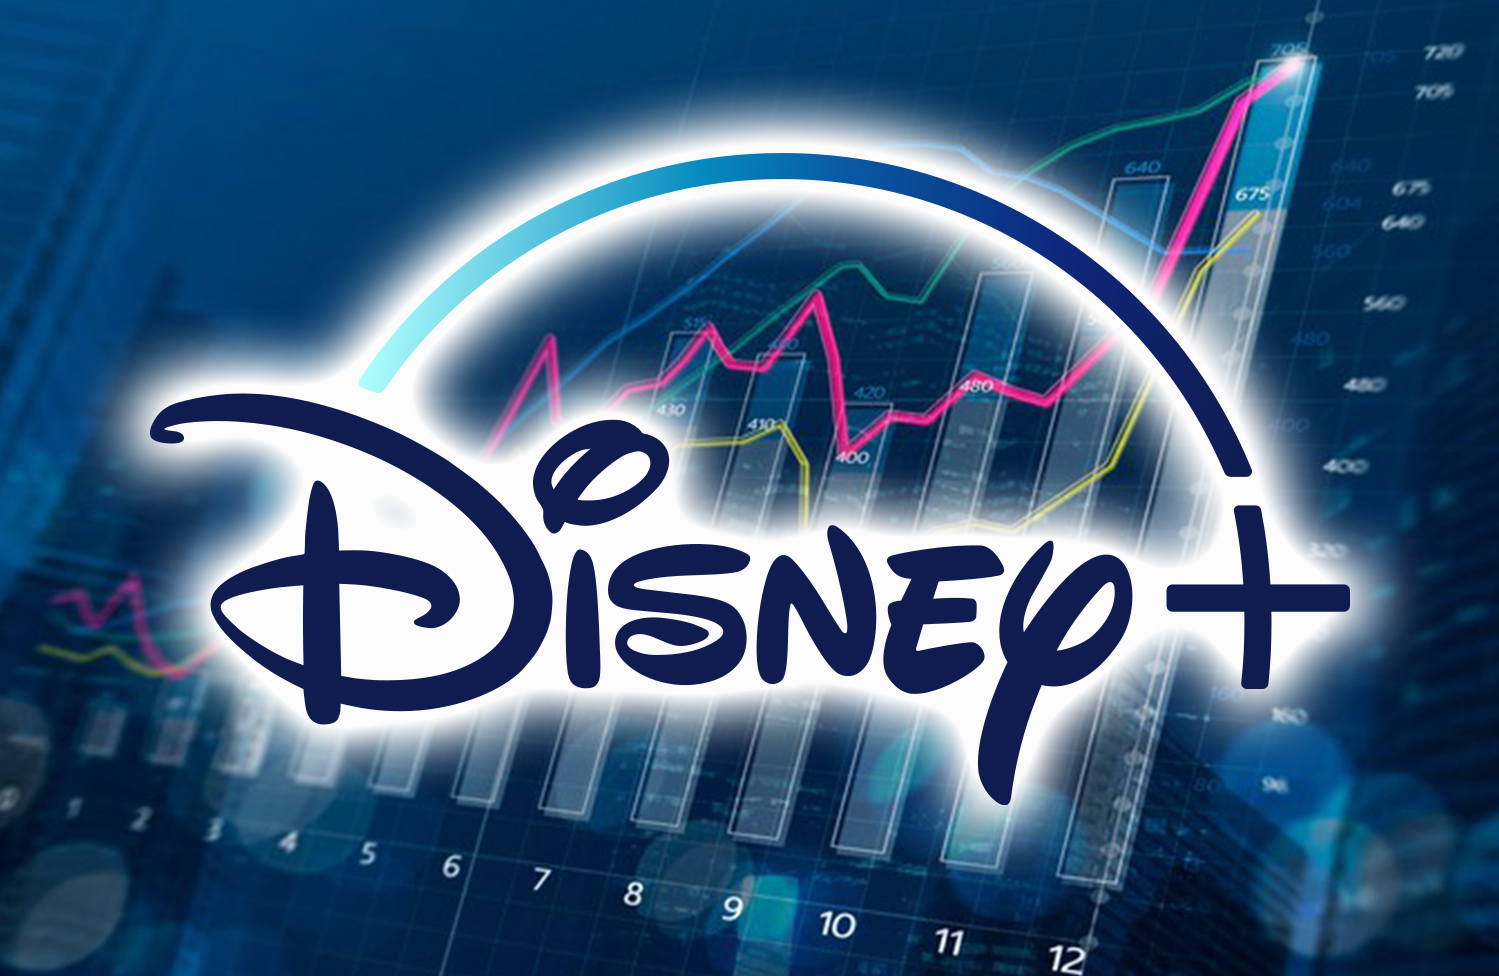 DIS stocks to buy Disney +